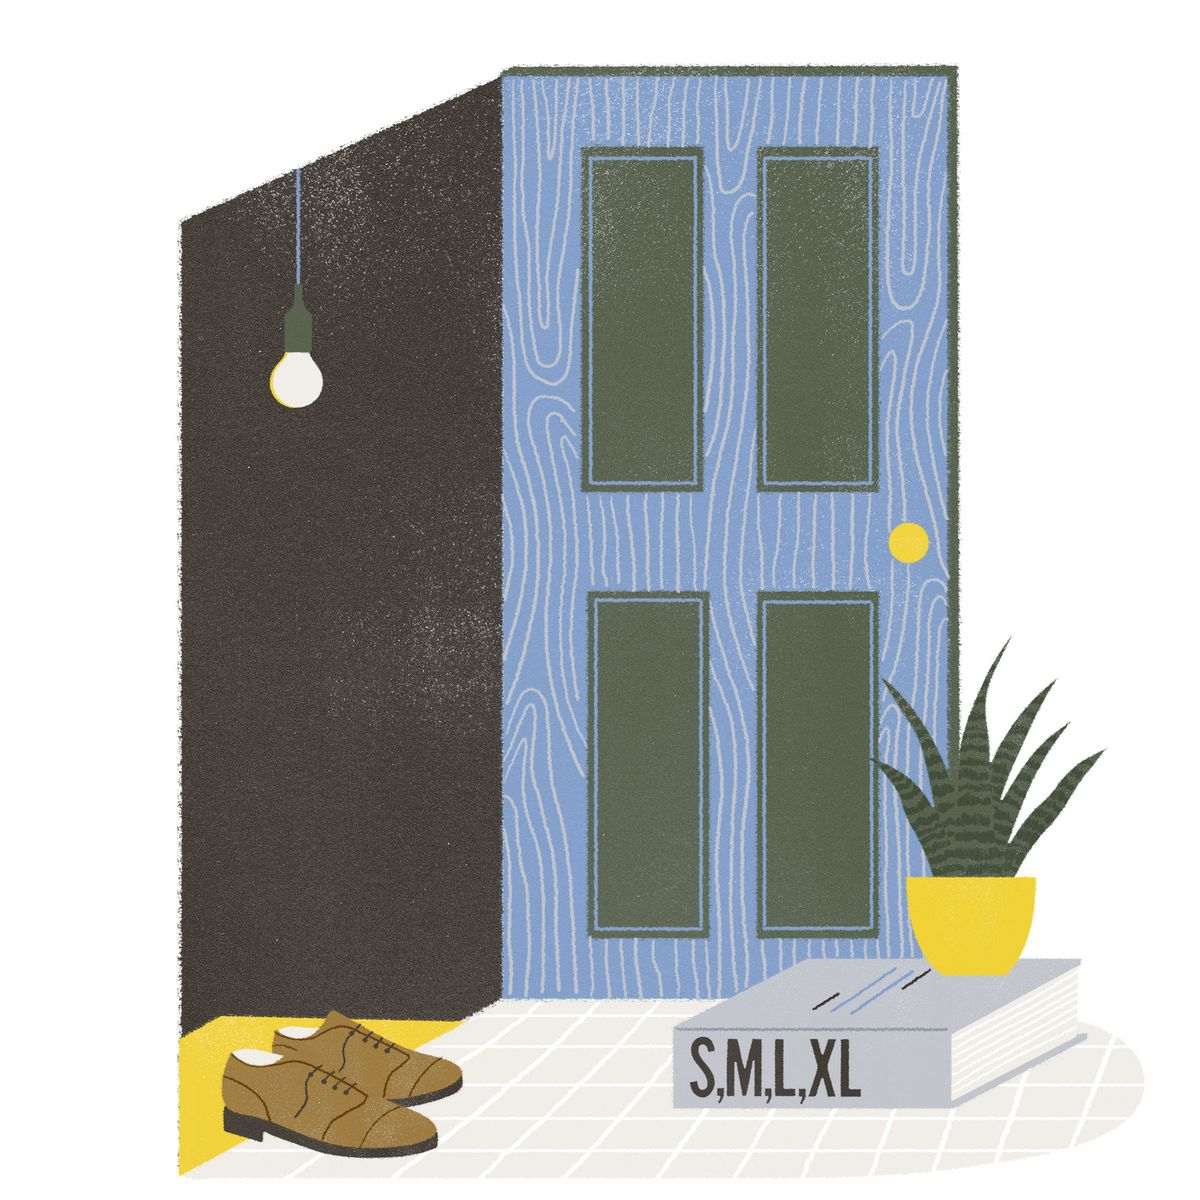 A door is propped open by the a large book with the title S,M,L,XL on the spine. A potted plant sits atop the book. Illustration.